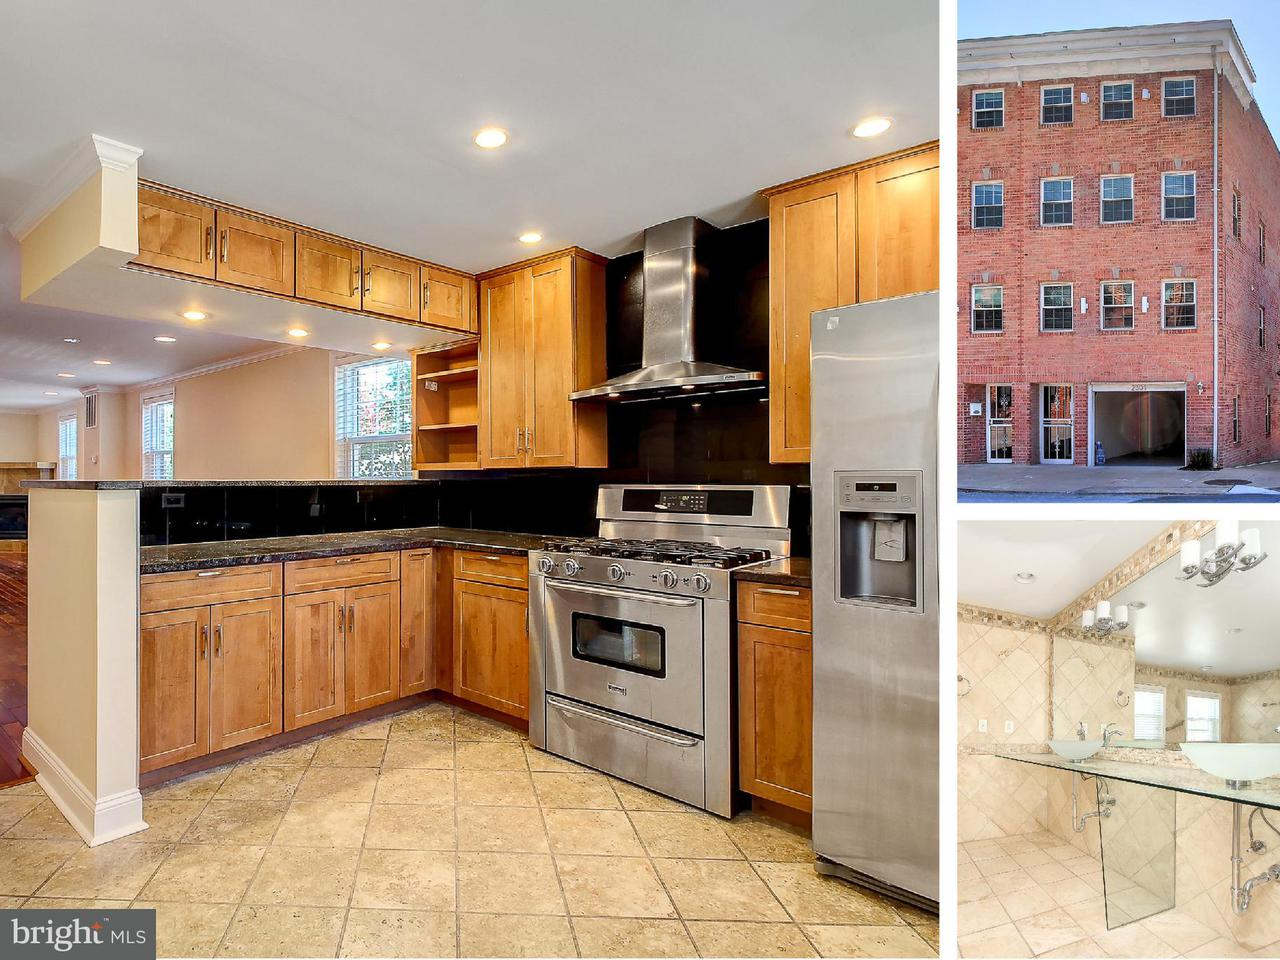 Other Residential for Rent at 2301 Essex St Baltimore, Maryland 21224 United States